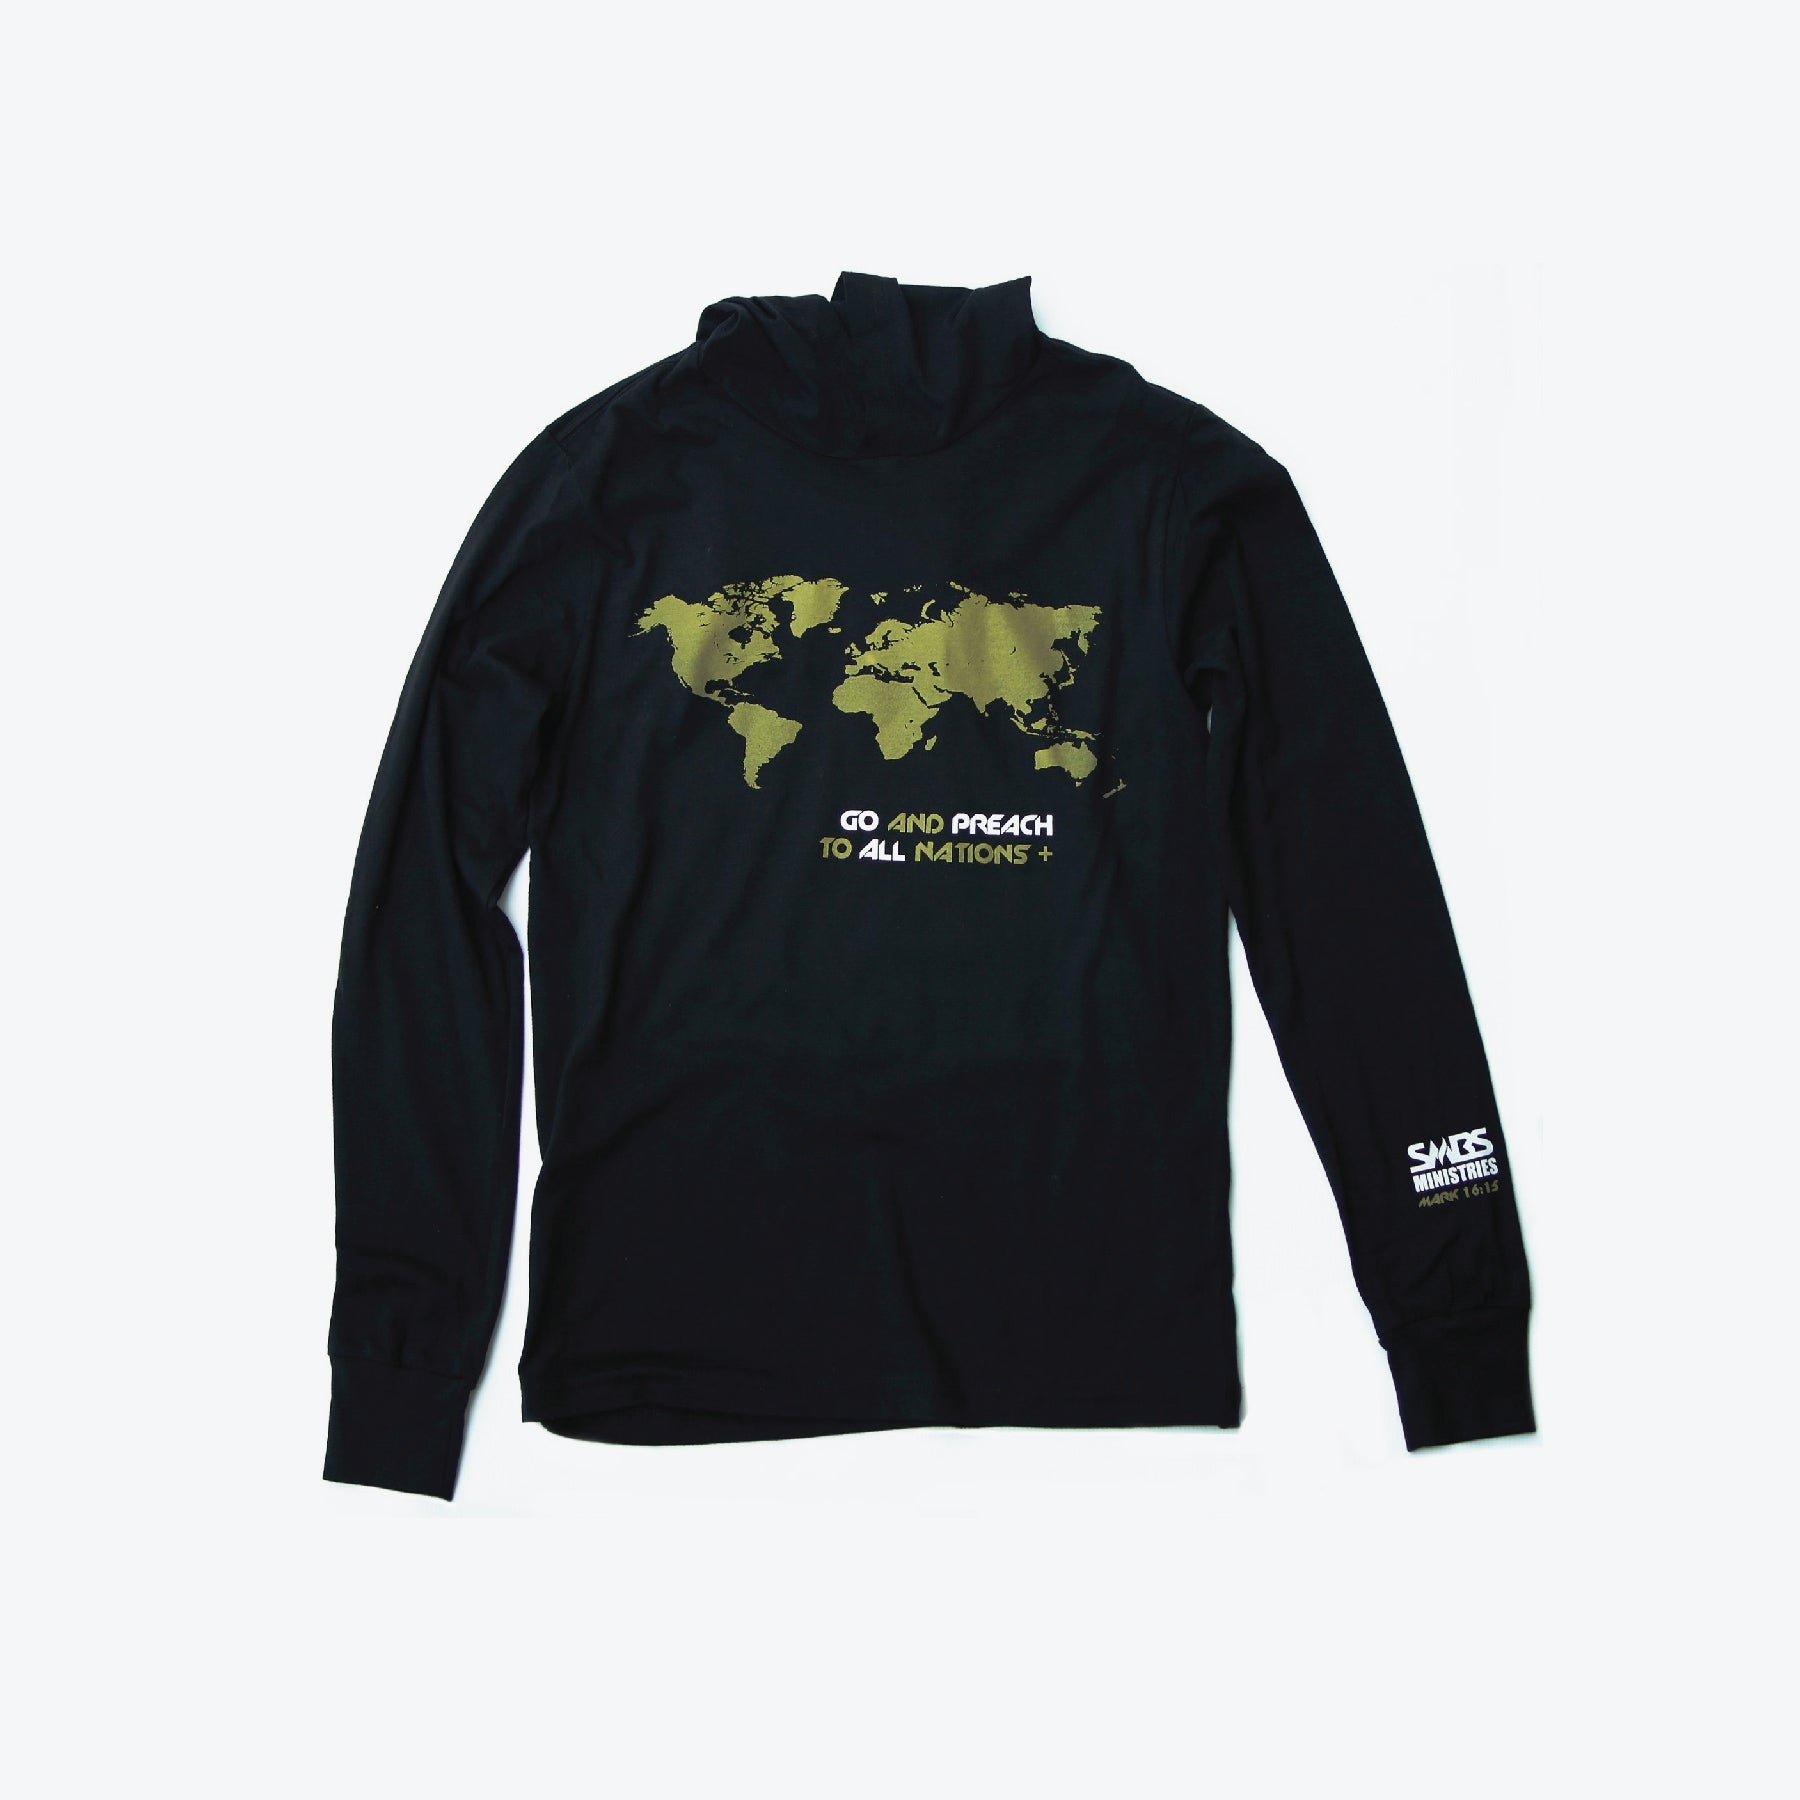 World map hoodie gold smbs ministries world map hoodie gold gumiabroncs Image collections